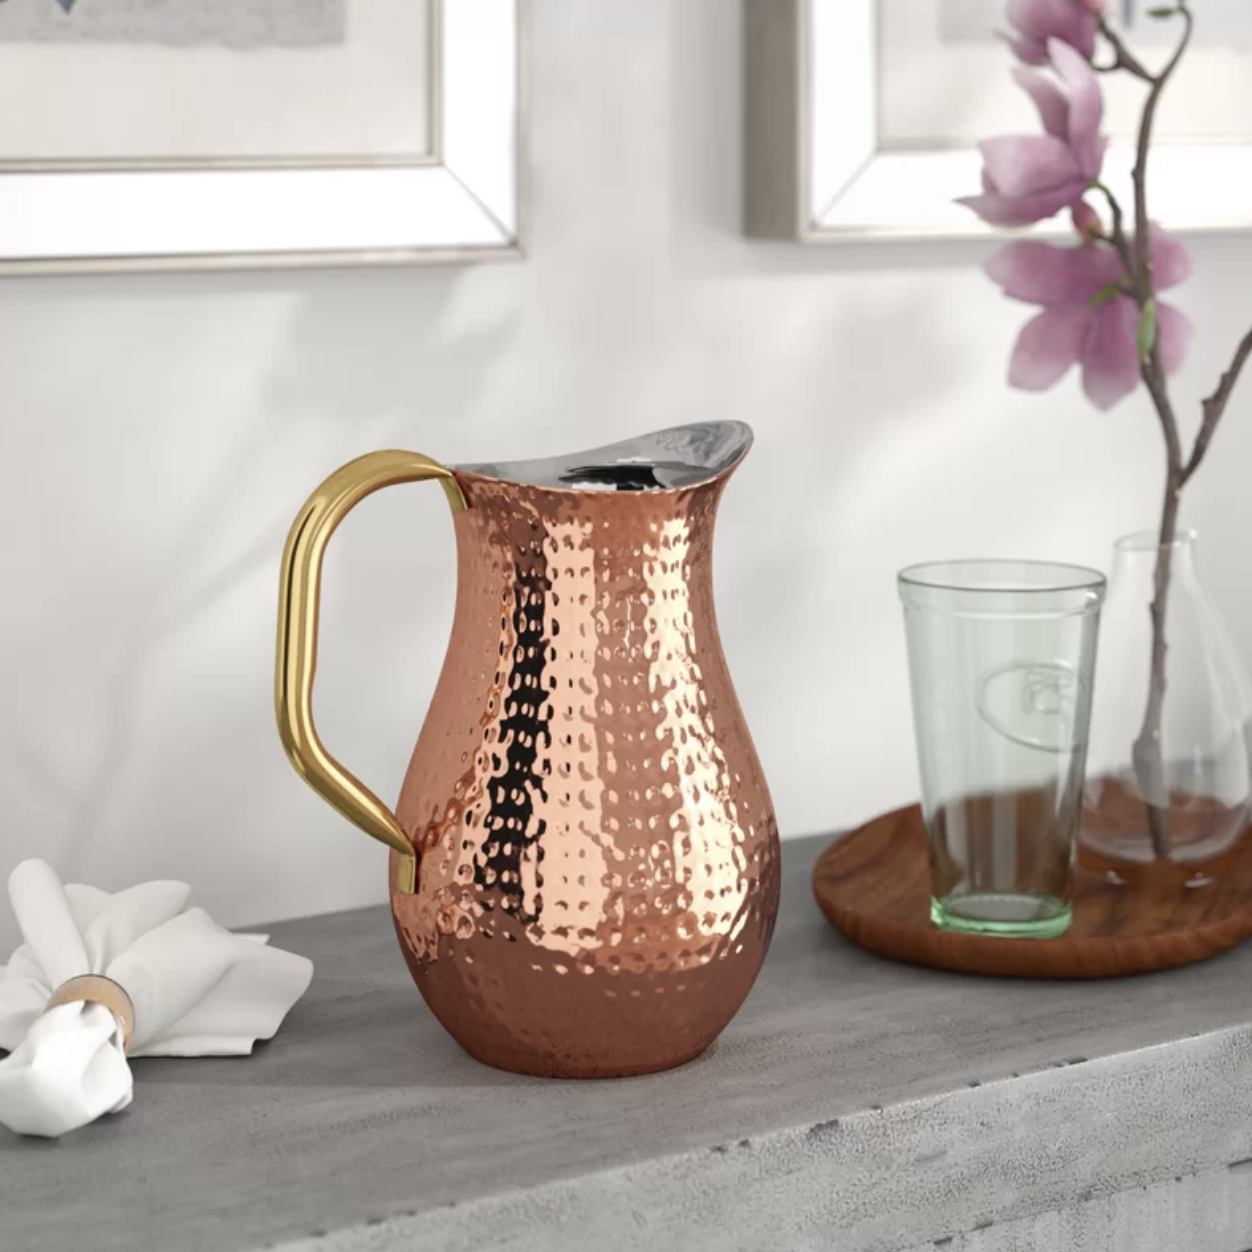 The copper pitcher